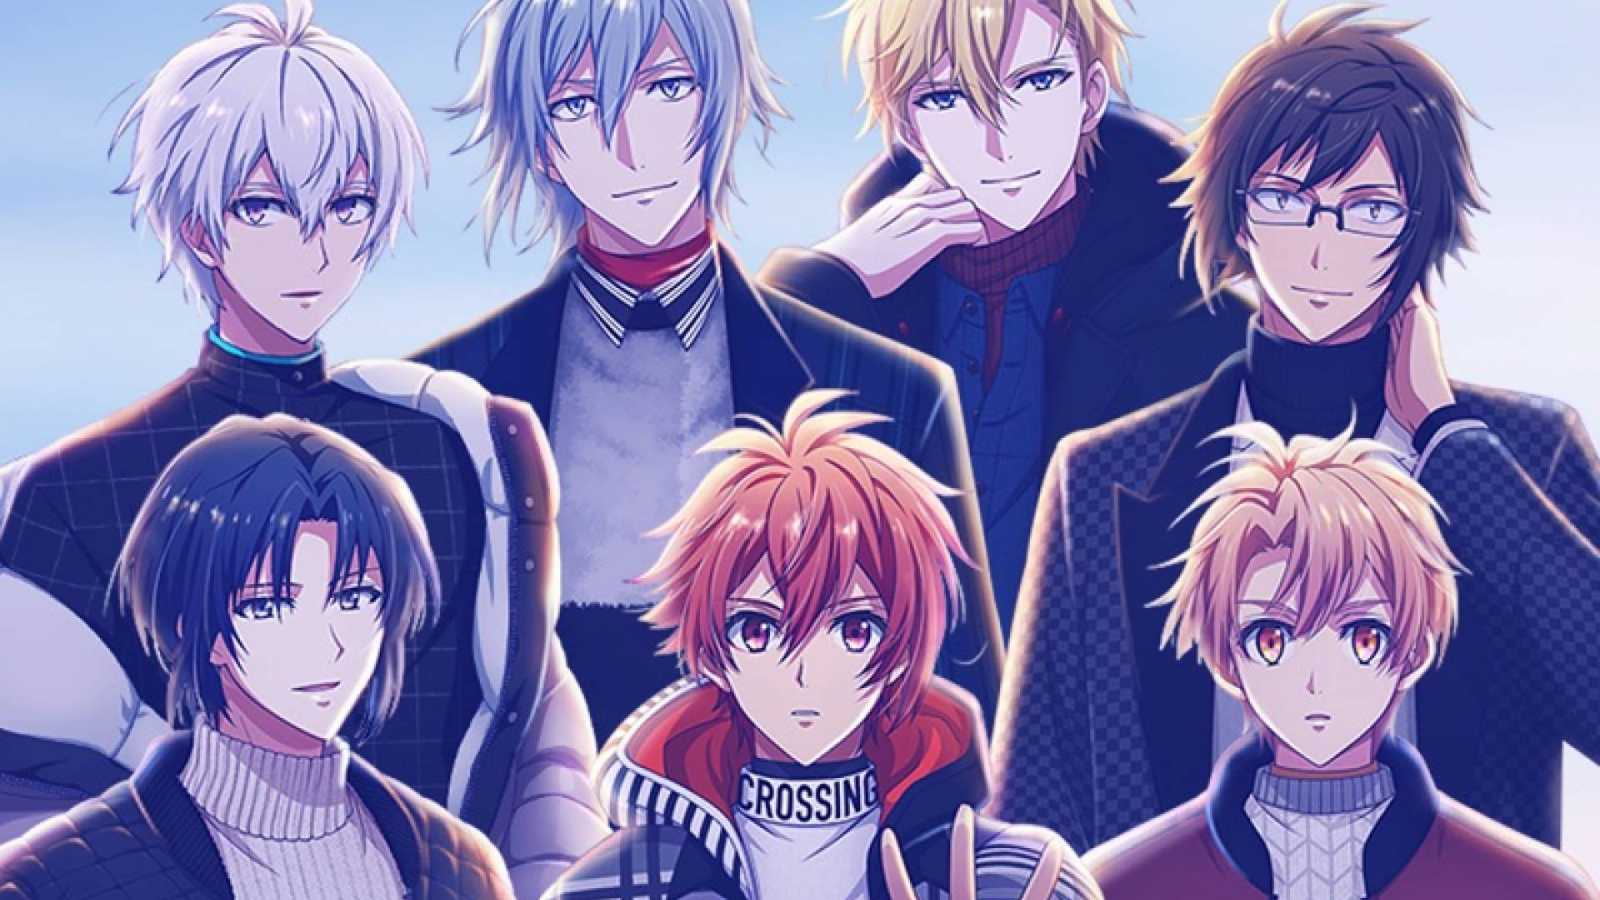 IDOLiSH7 © IDOLiSH7. All rights reserved.